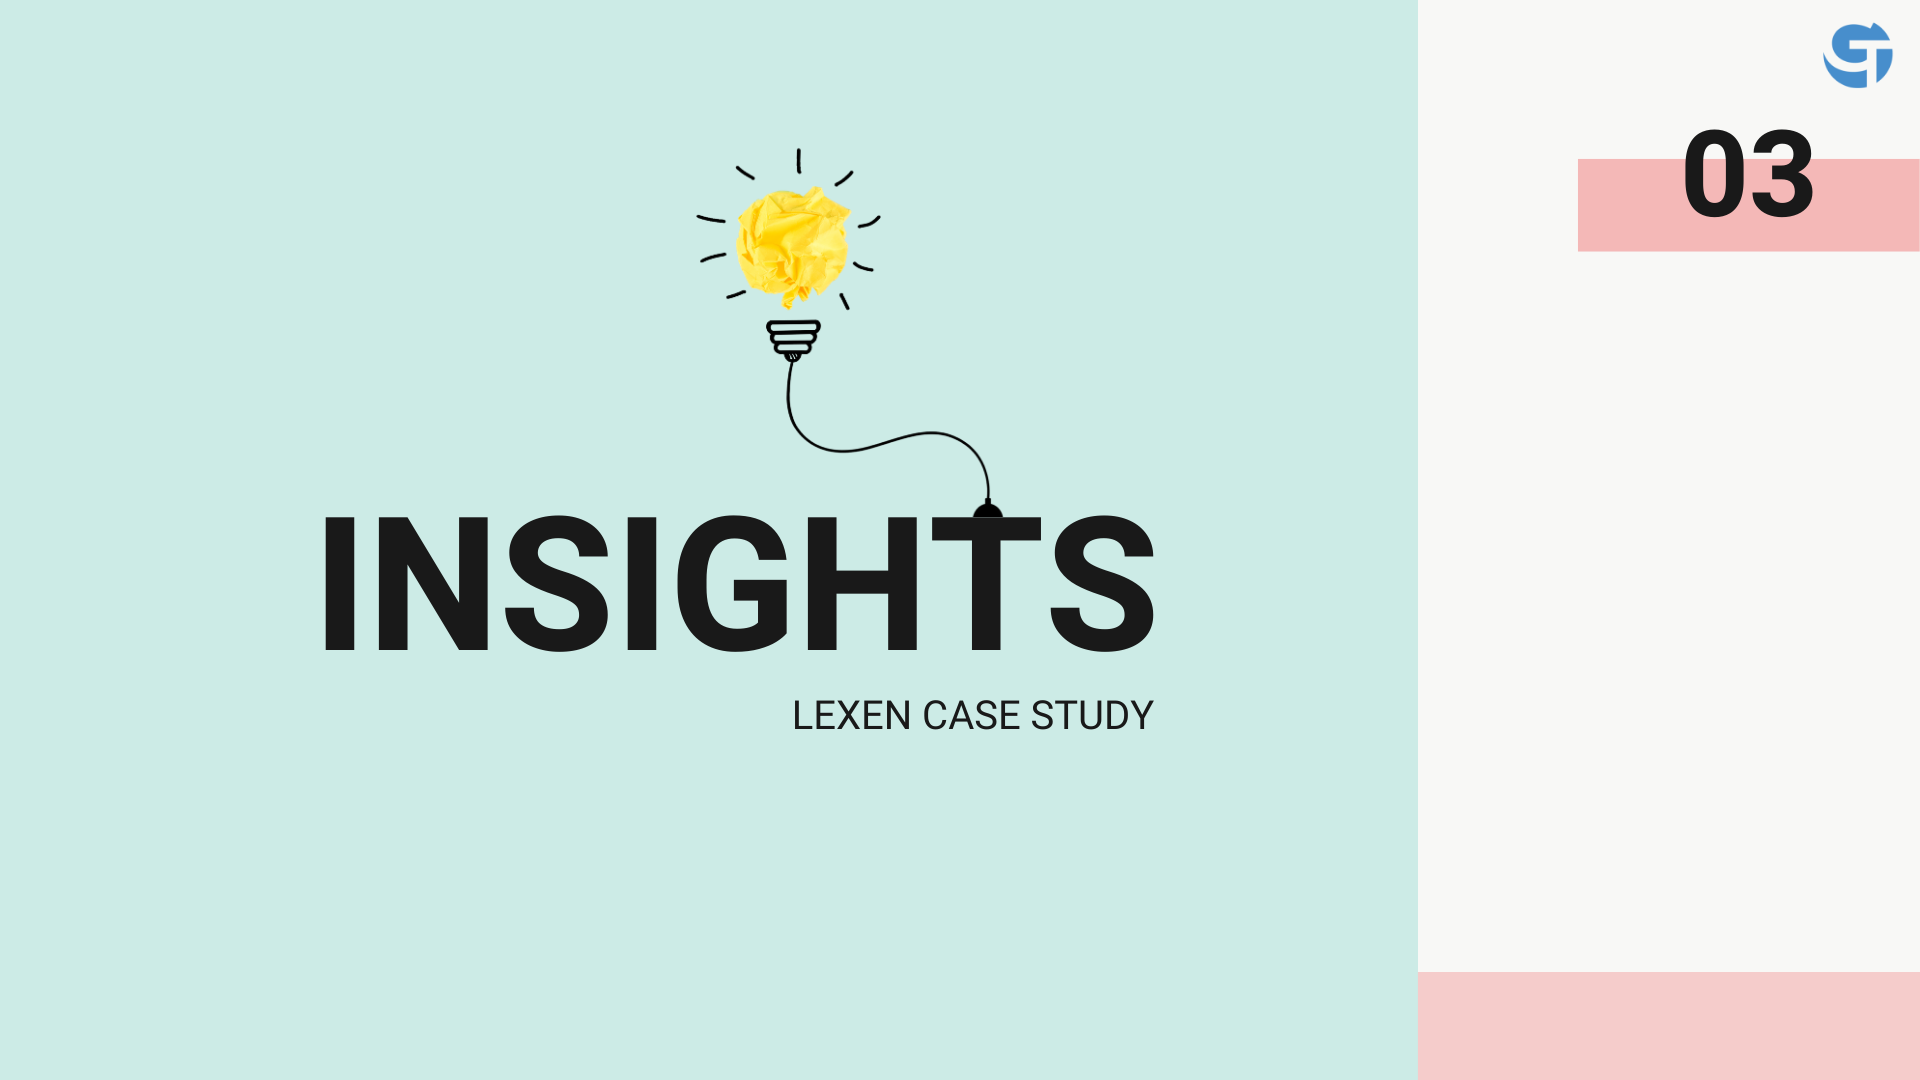 How Lexen Hotel came up with insights